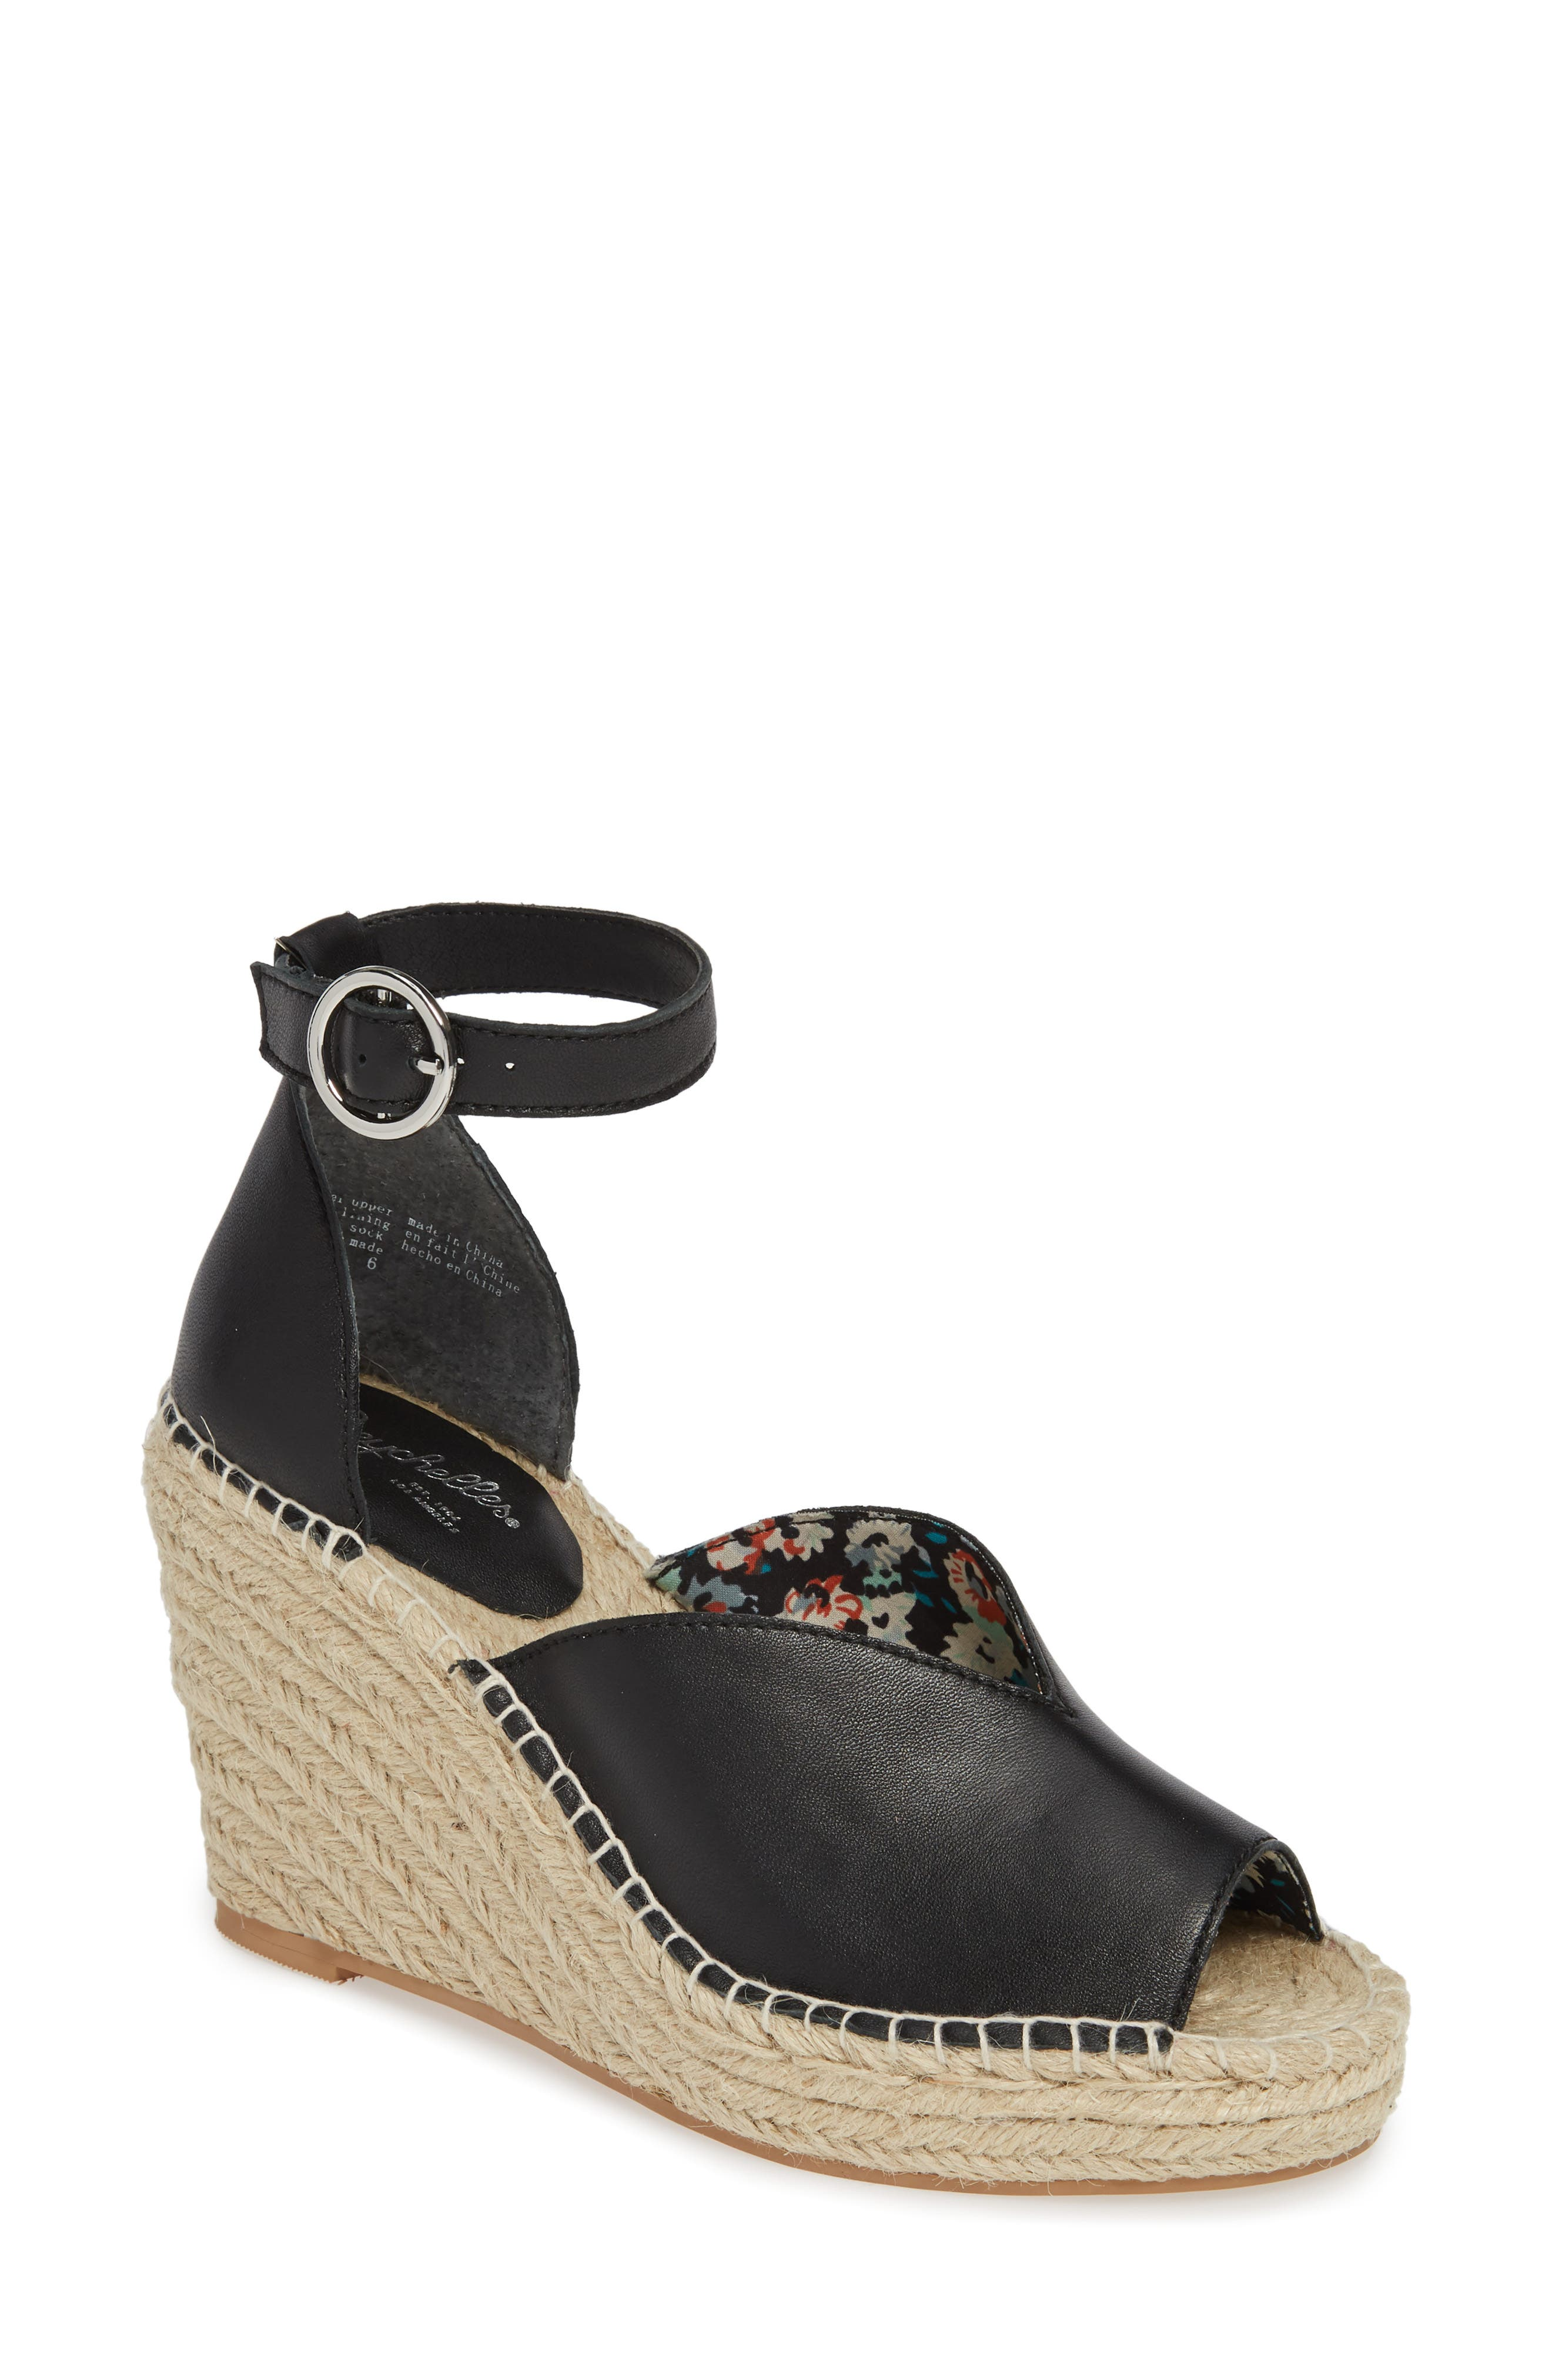 SEYCHELLES Collectibles Espadrille Wedge Sandal, Main, color, BLACK LEATHER